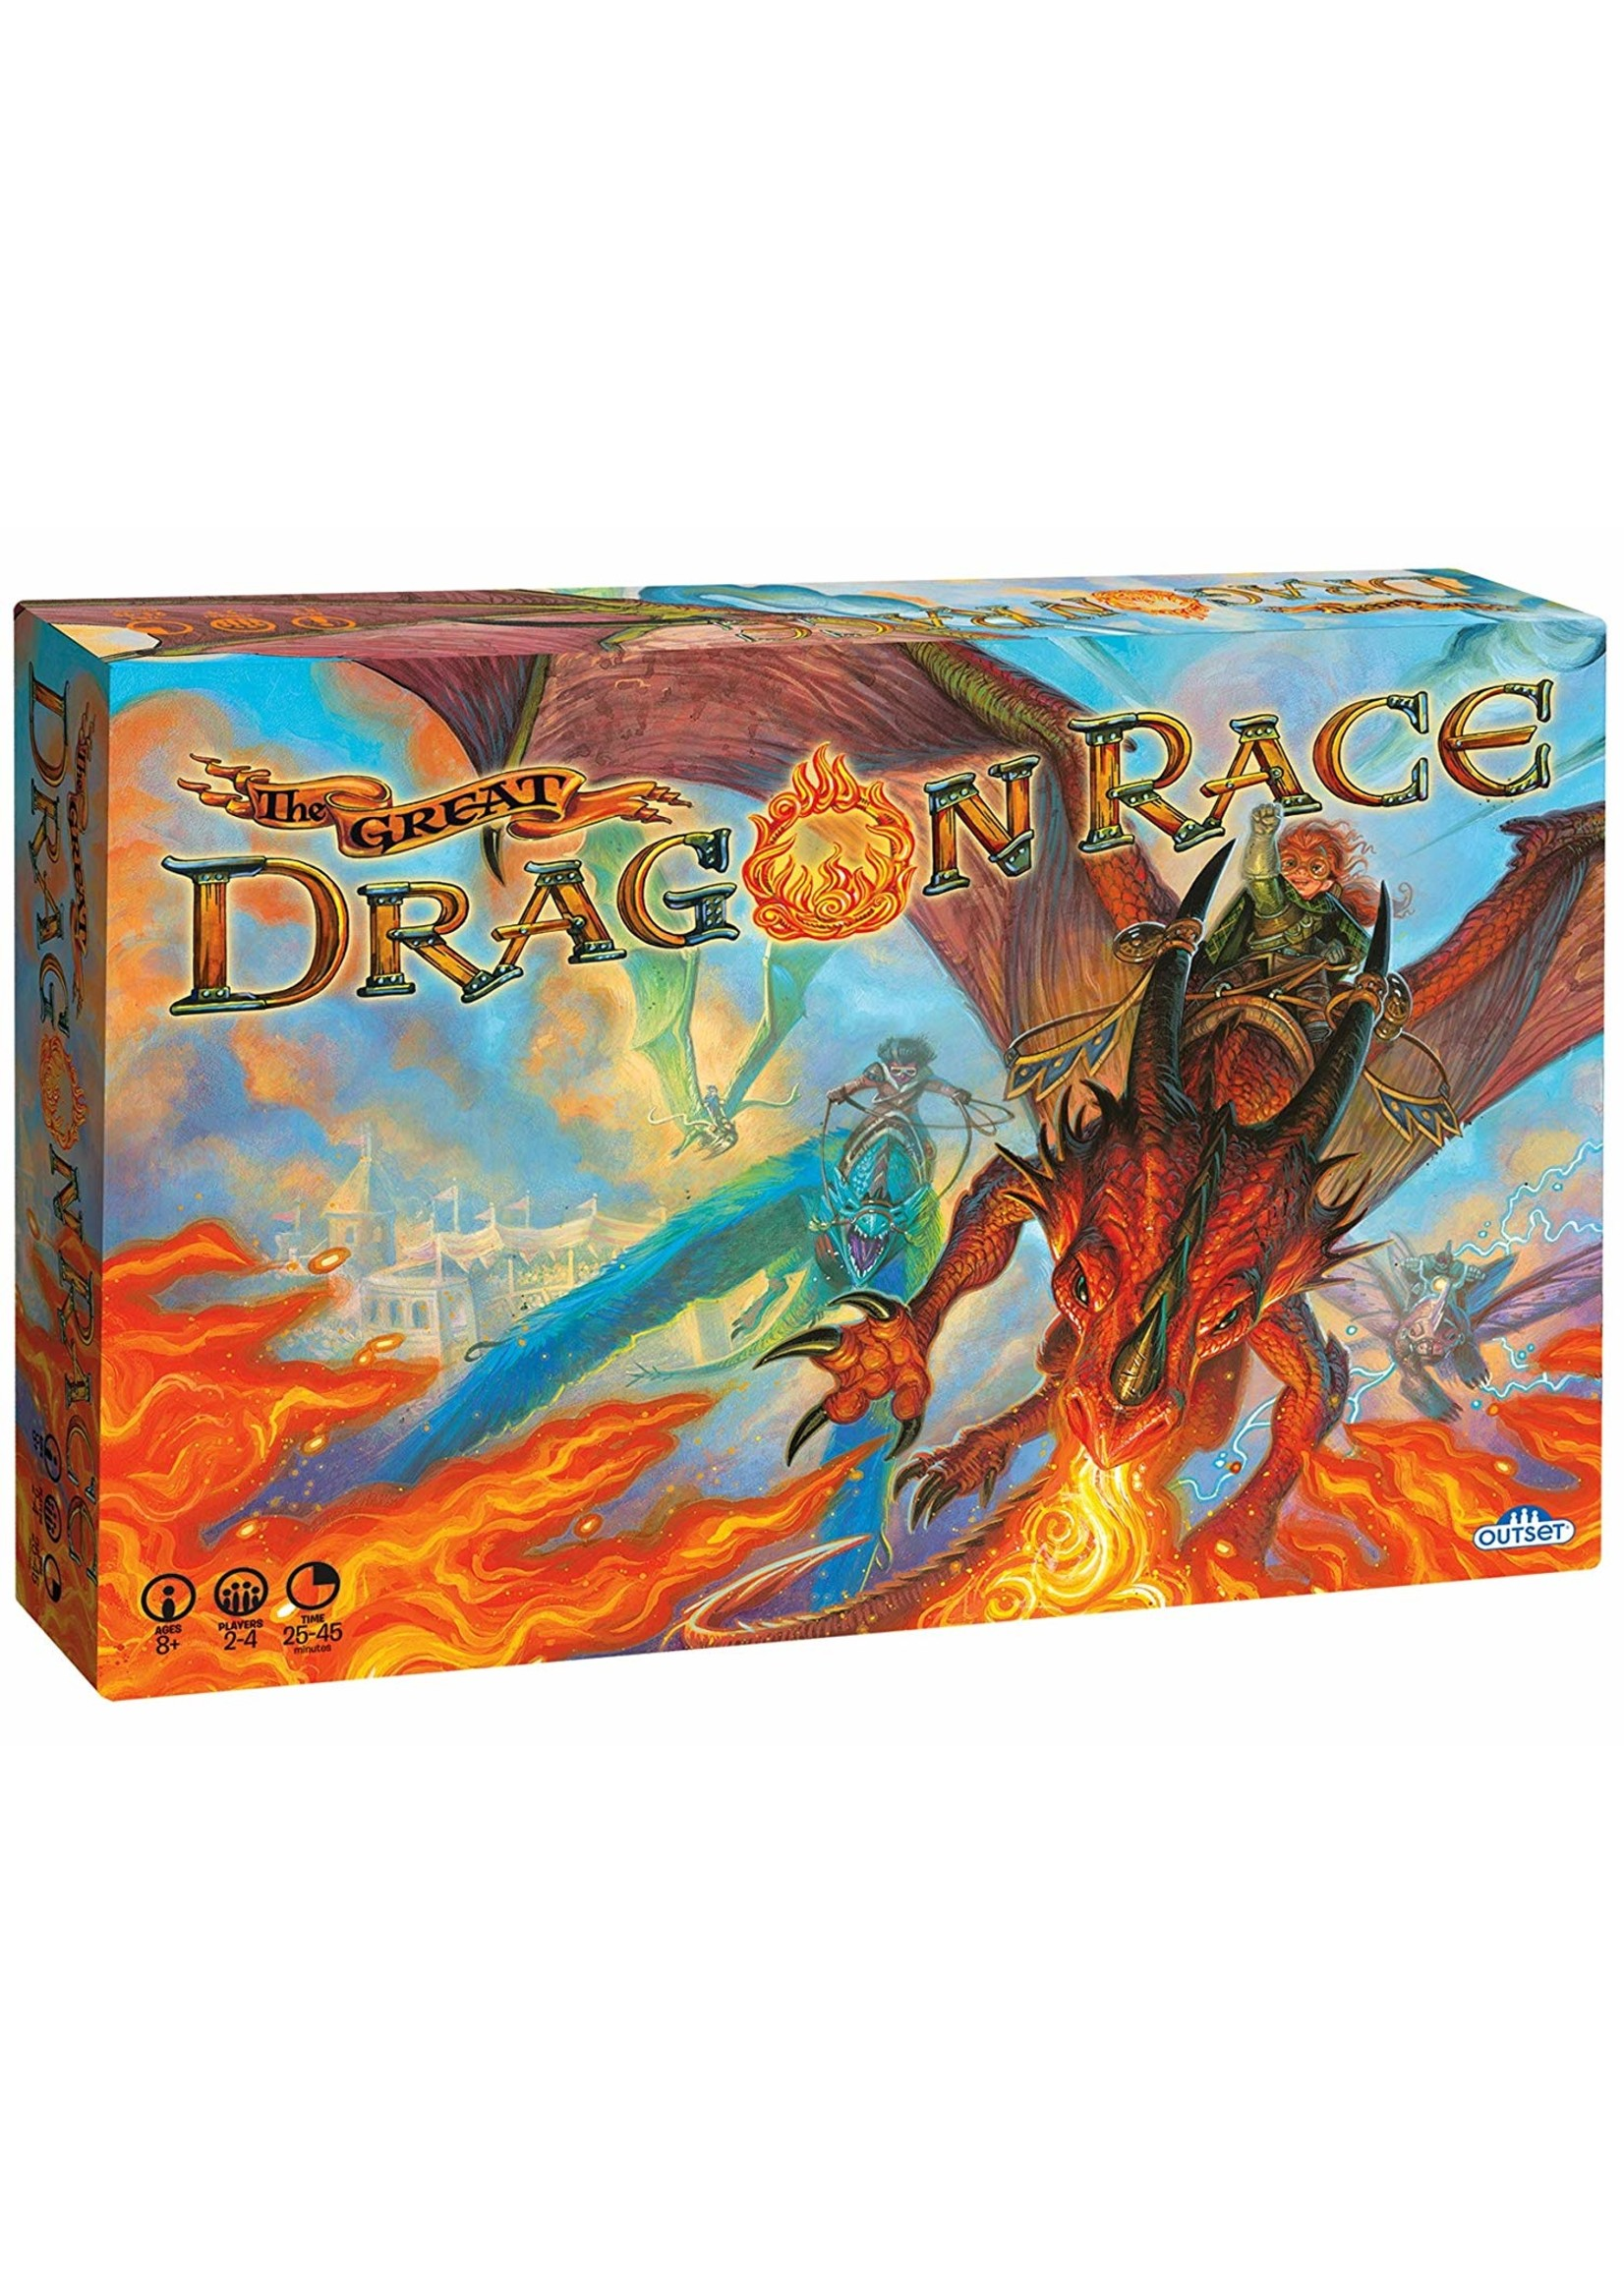 The Great Dragon Race